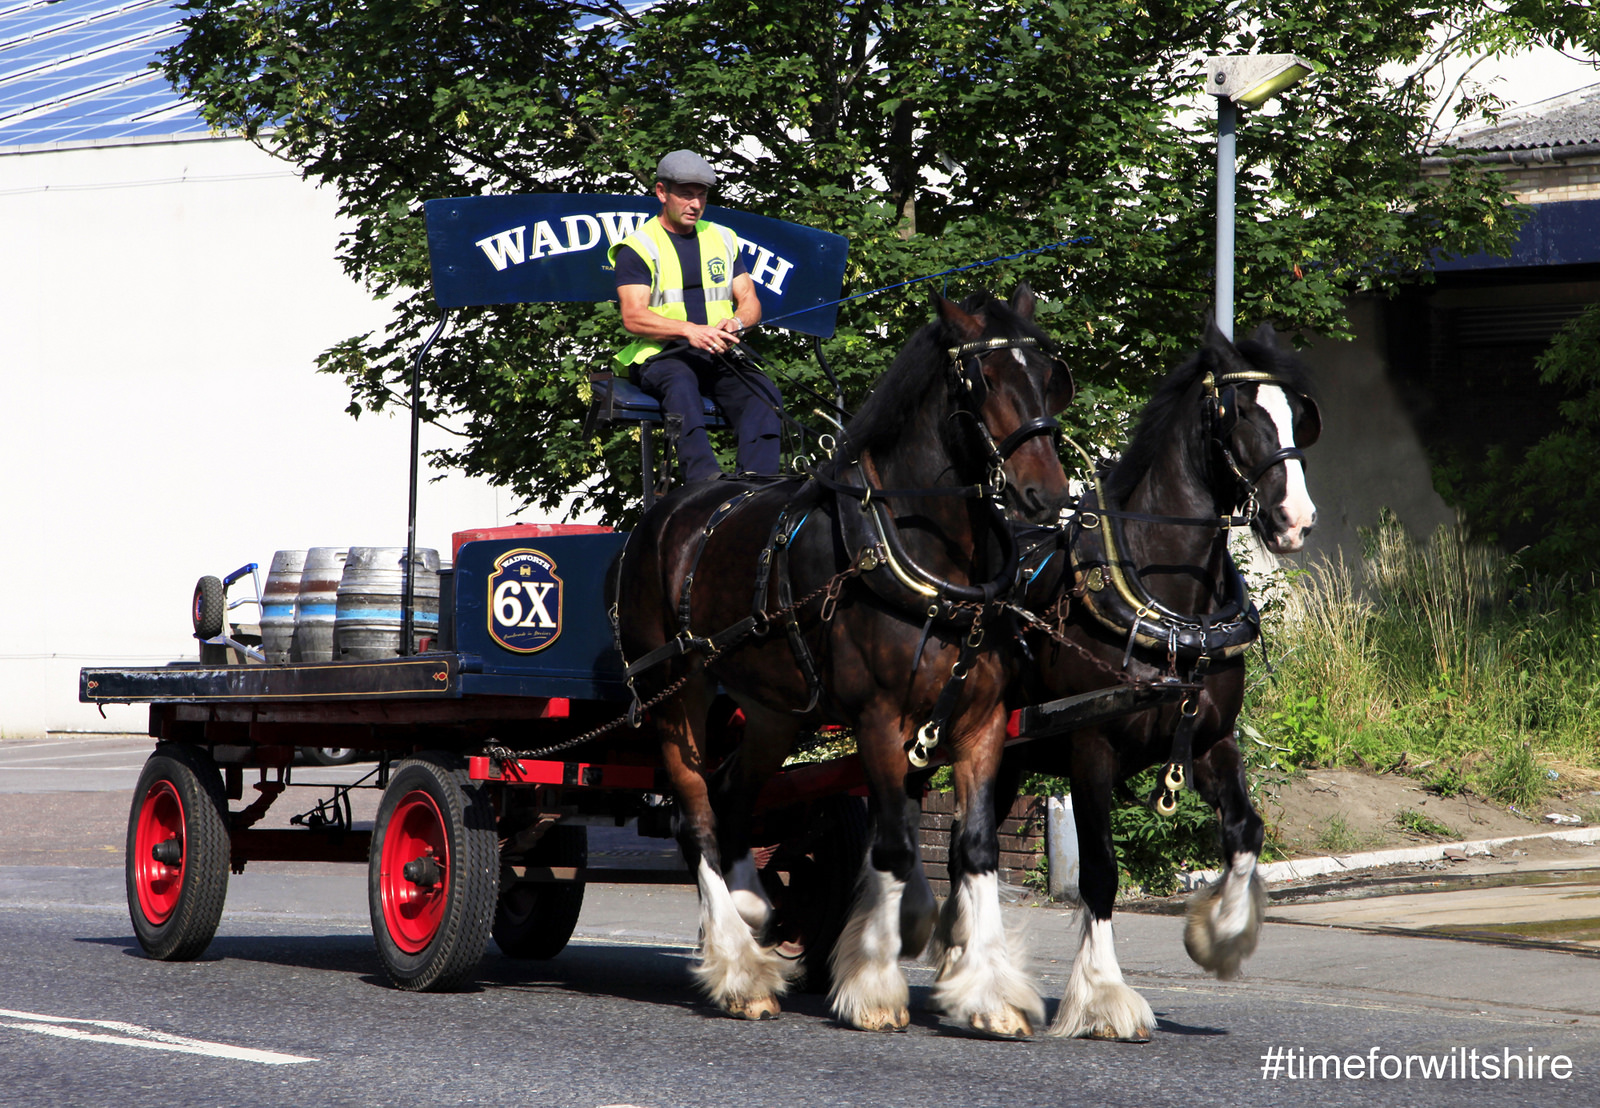 Shire horses delivery casks of ale (c)visitwiltshire.co.uk